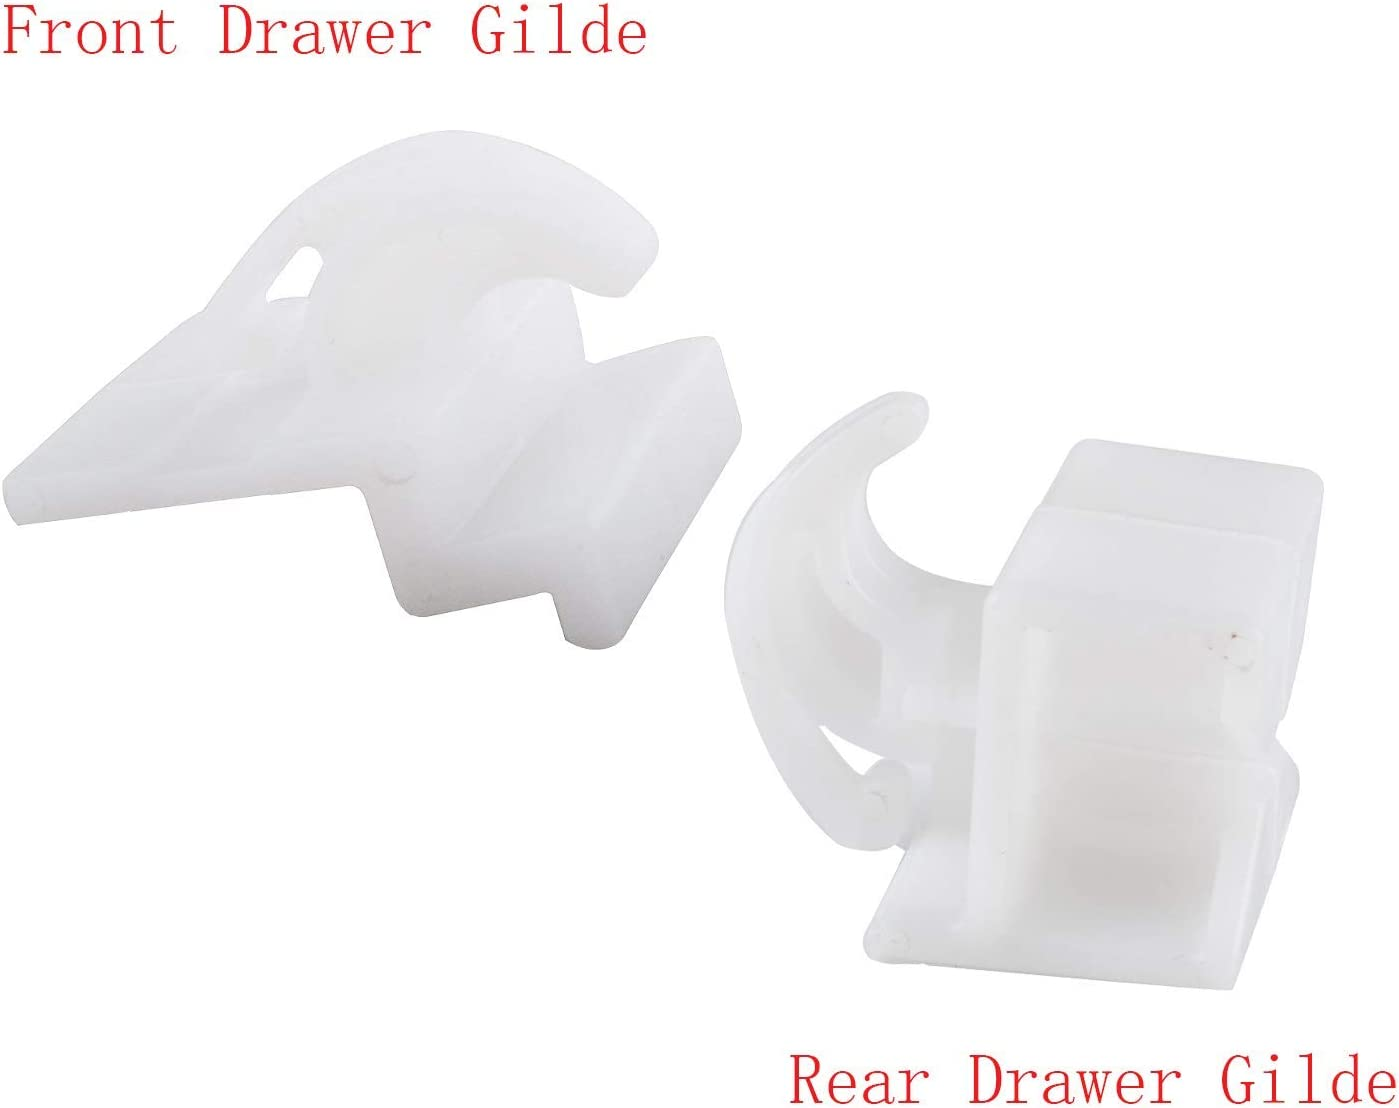 2pc and Rear Drawer Glide 3051163 2pc for Frigidaire Kenmore Wadoy Refrigerator Front Drawer Glide 3051162